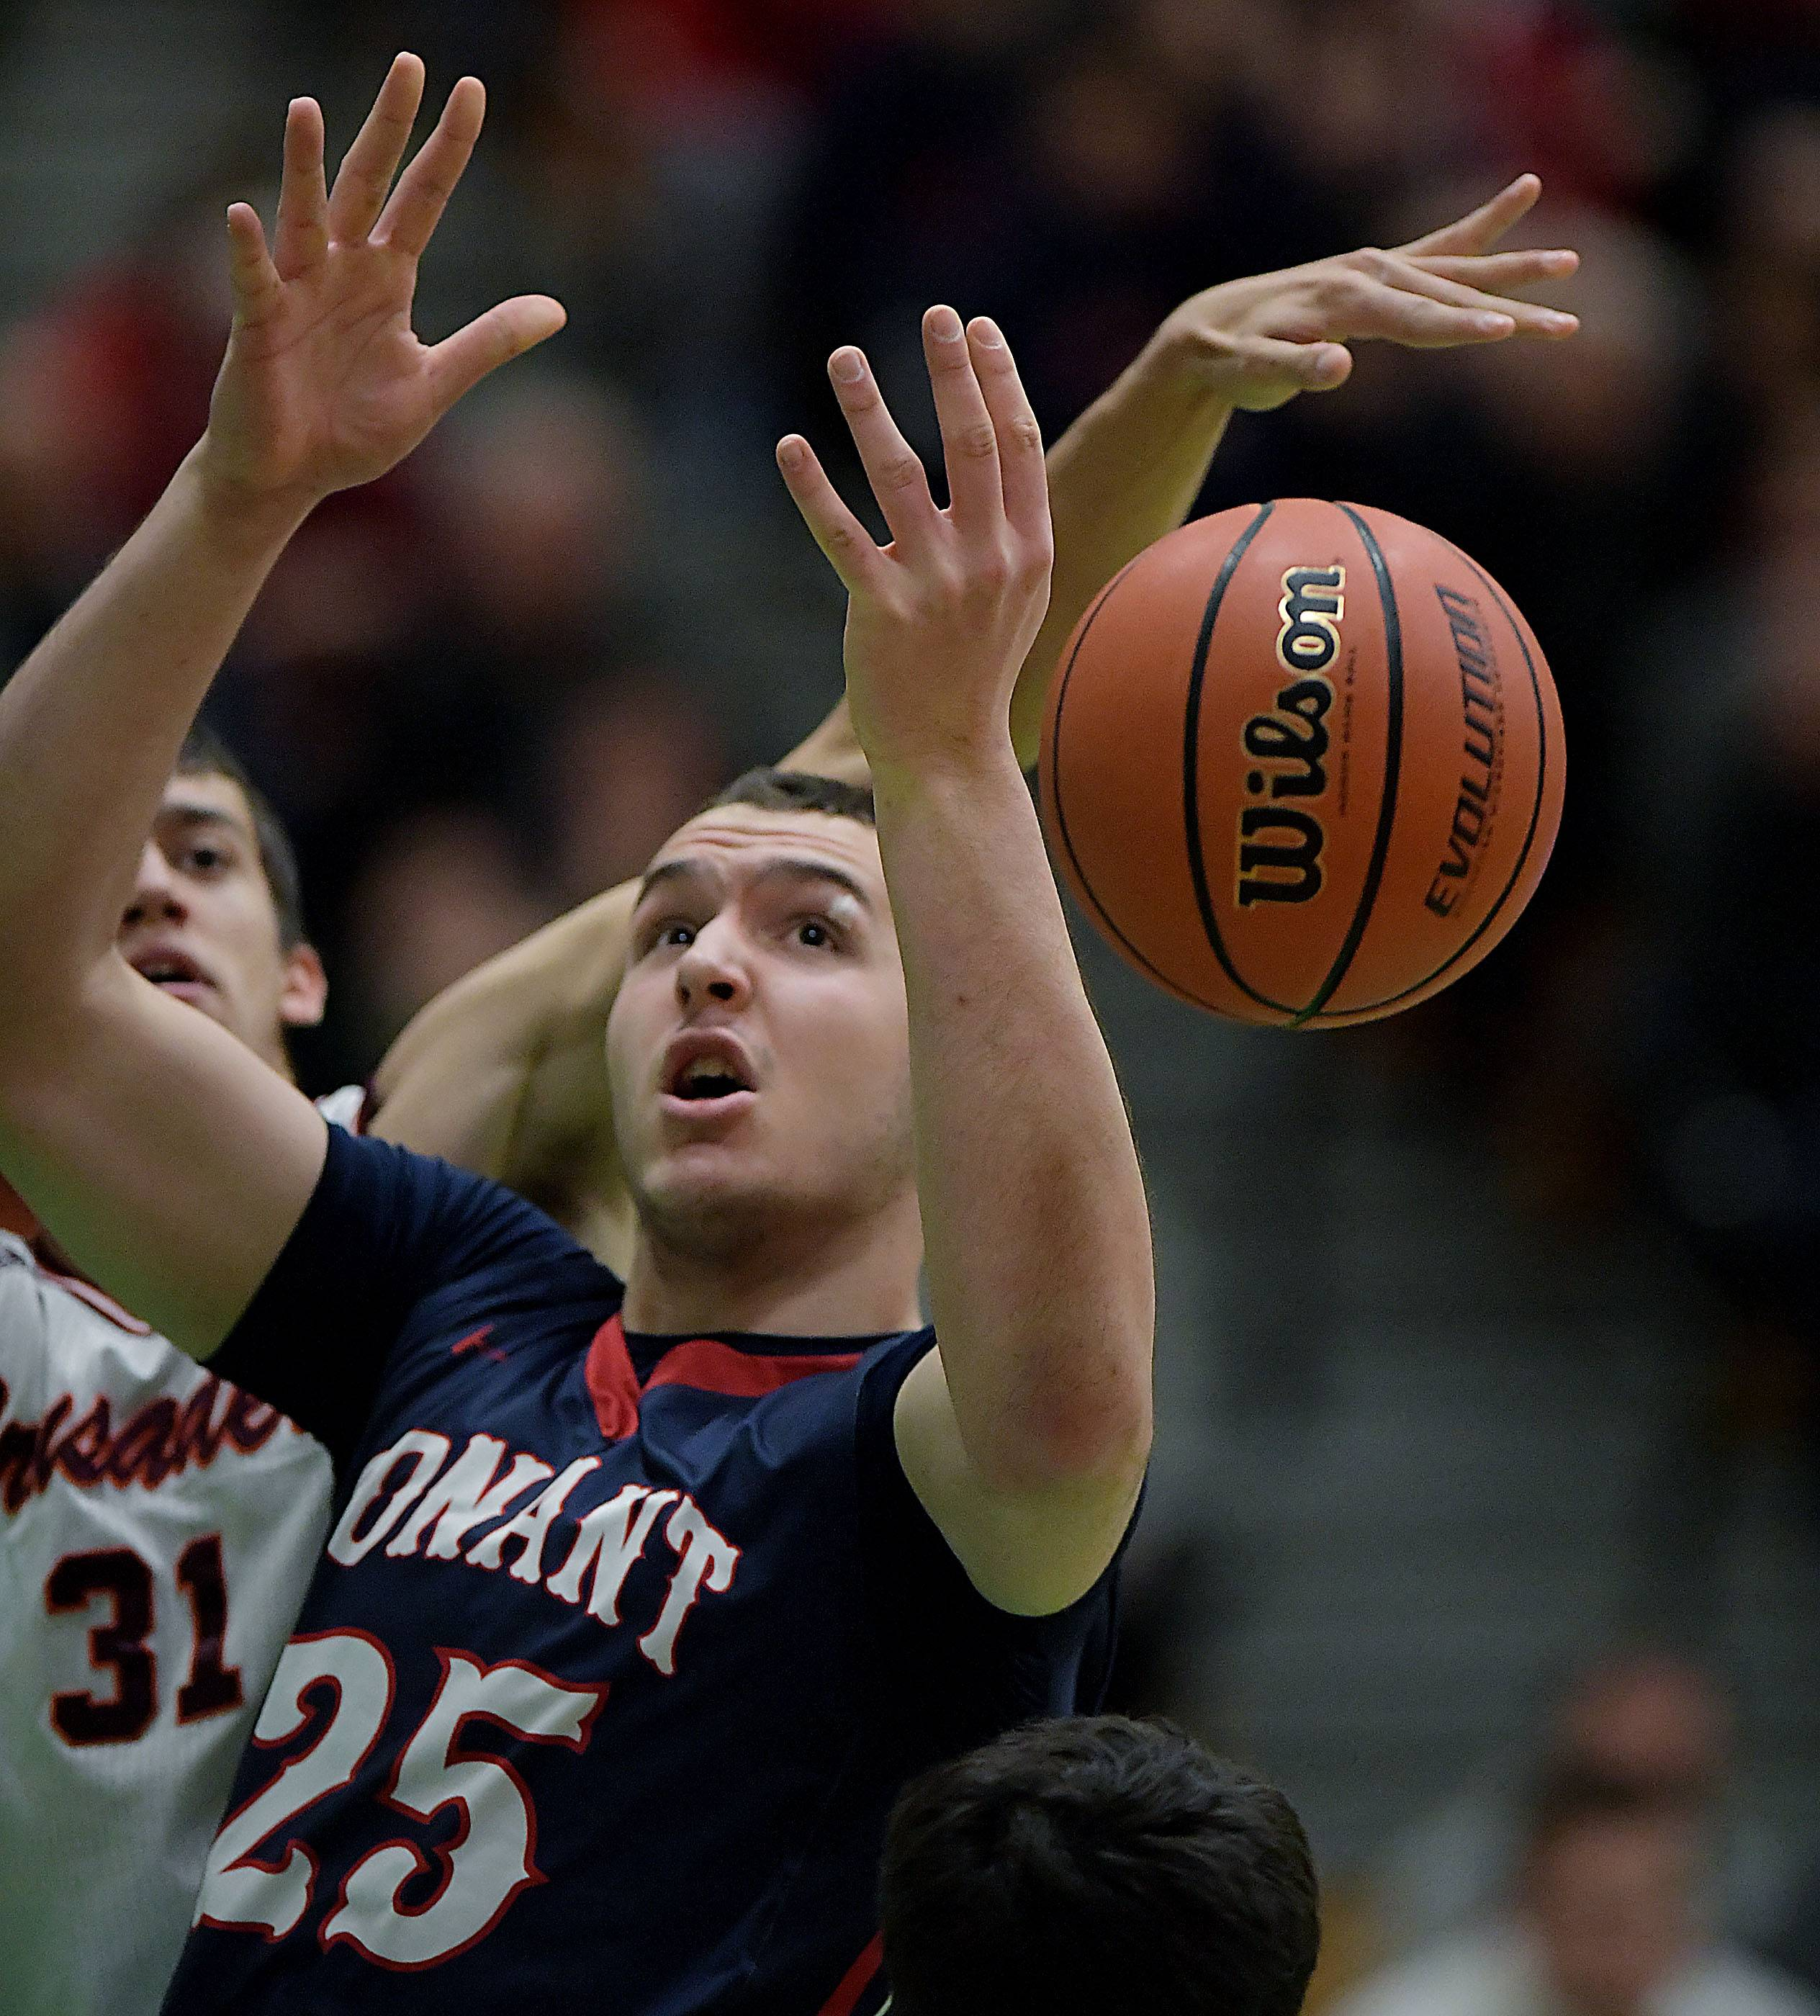 Conant's Ryan Davis loses the ball under defensive pressure from Brother Rice's Nick Bowes on Saturday at York High School in Elmhurst.